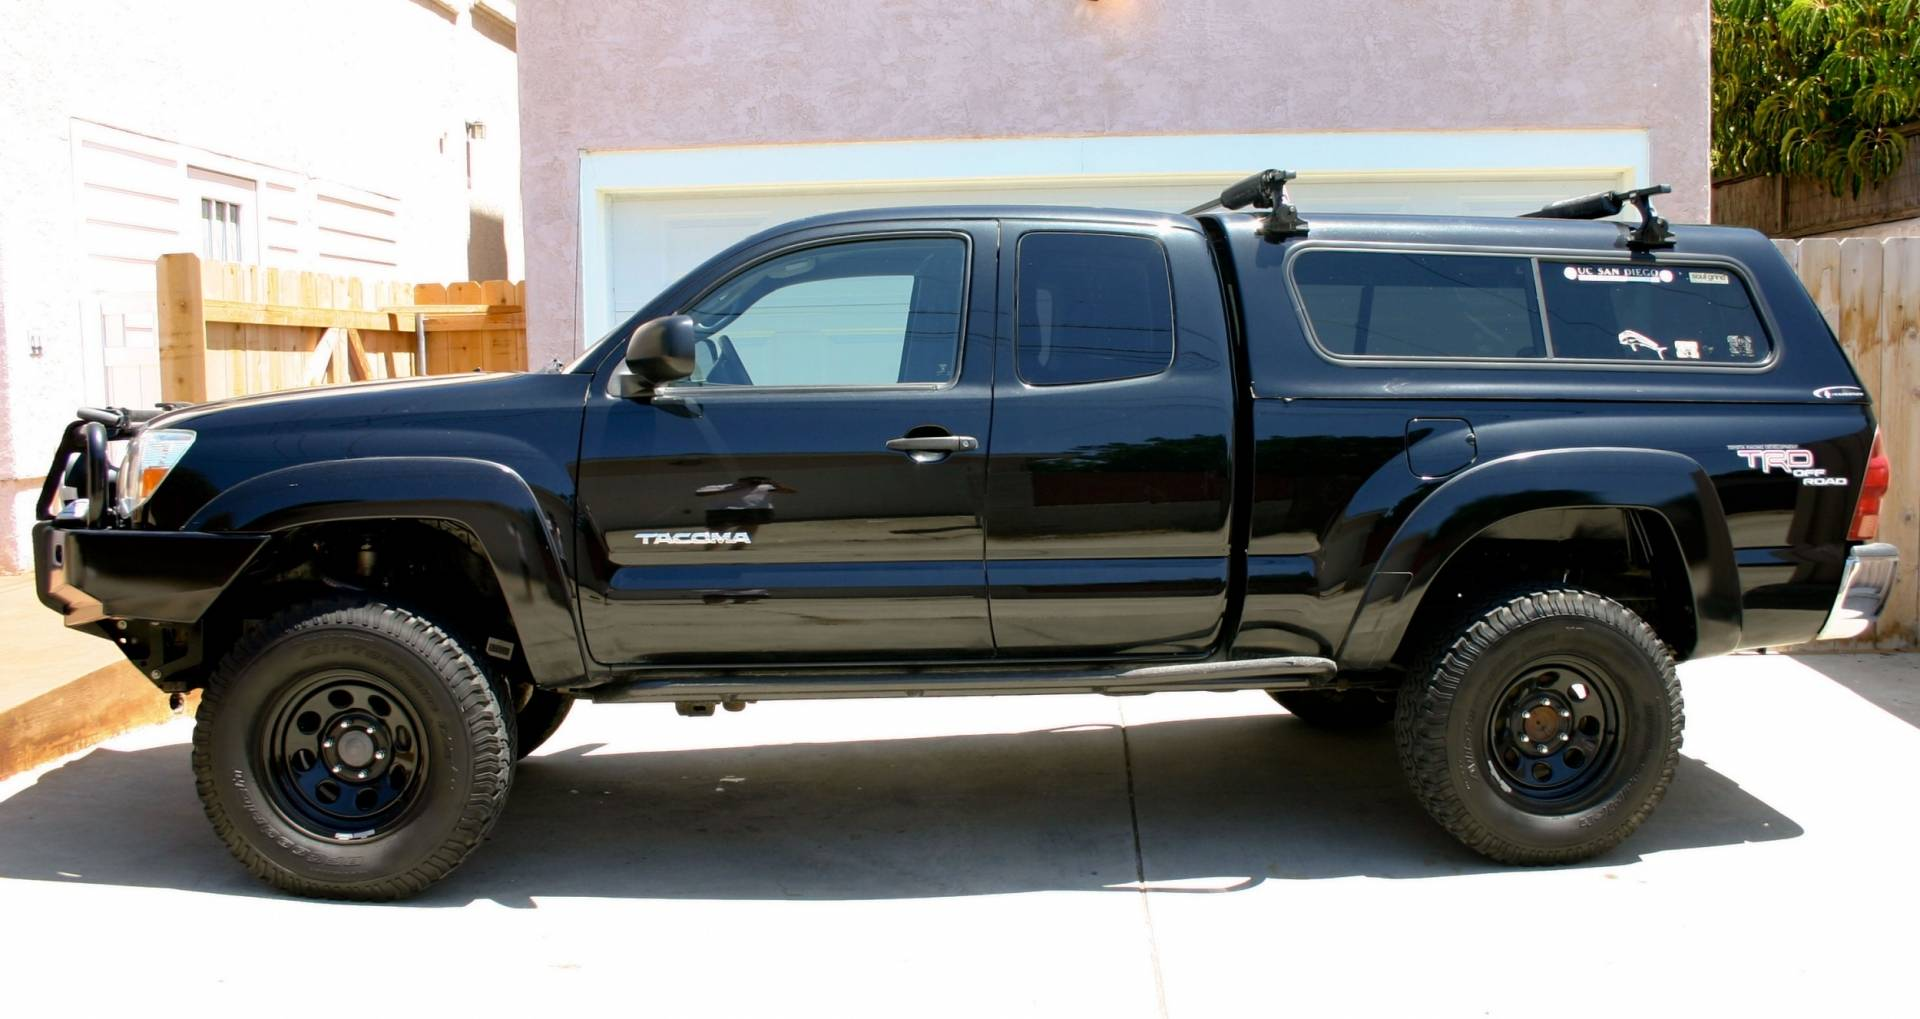 Lifted Toyota Tacoma For Sale >> 2005 Toyota Tacoma TRD Lifted $18750 | Bloodydecks